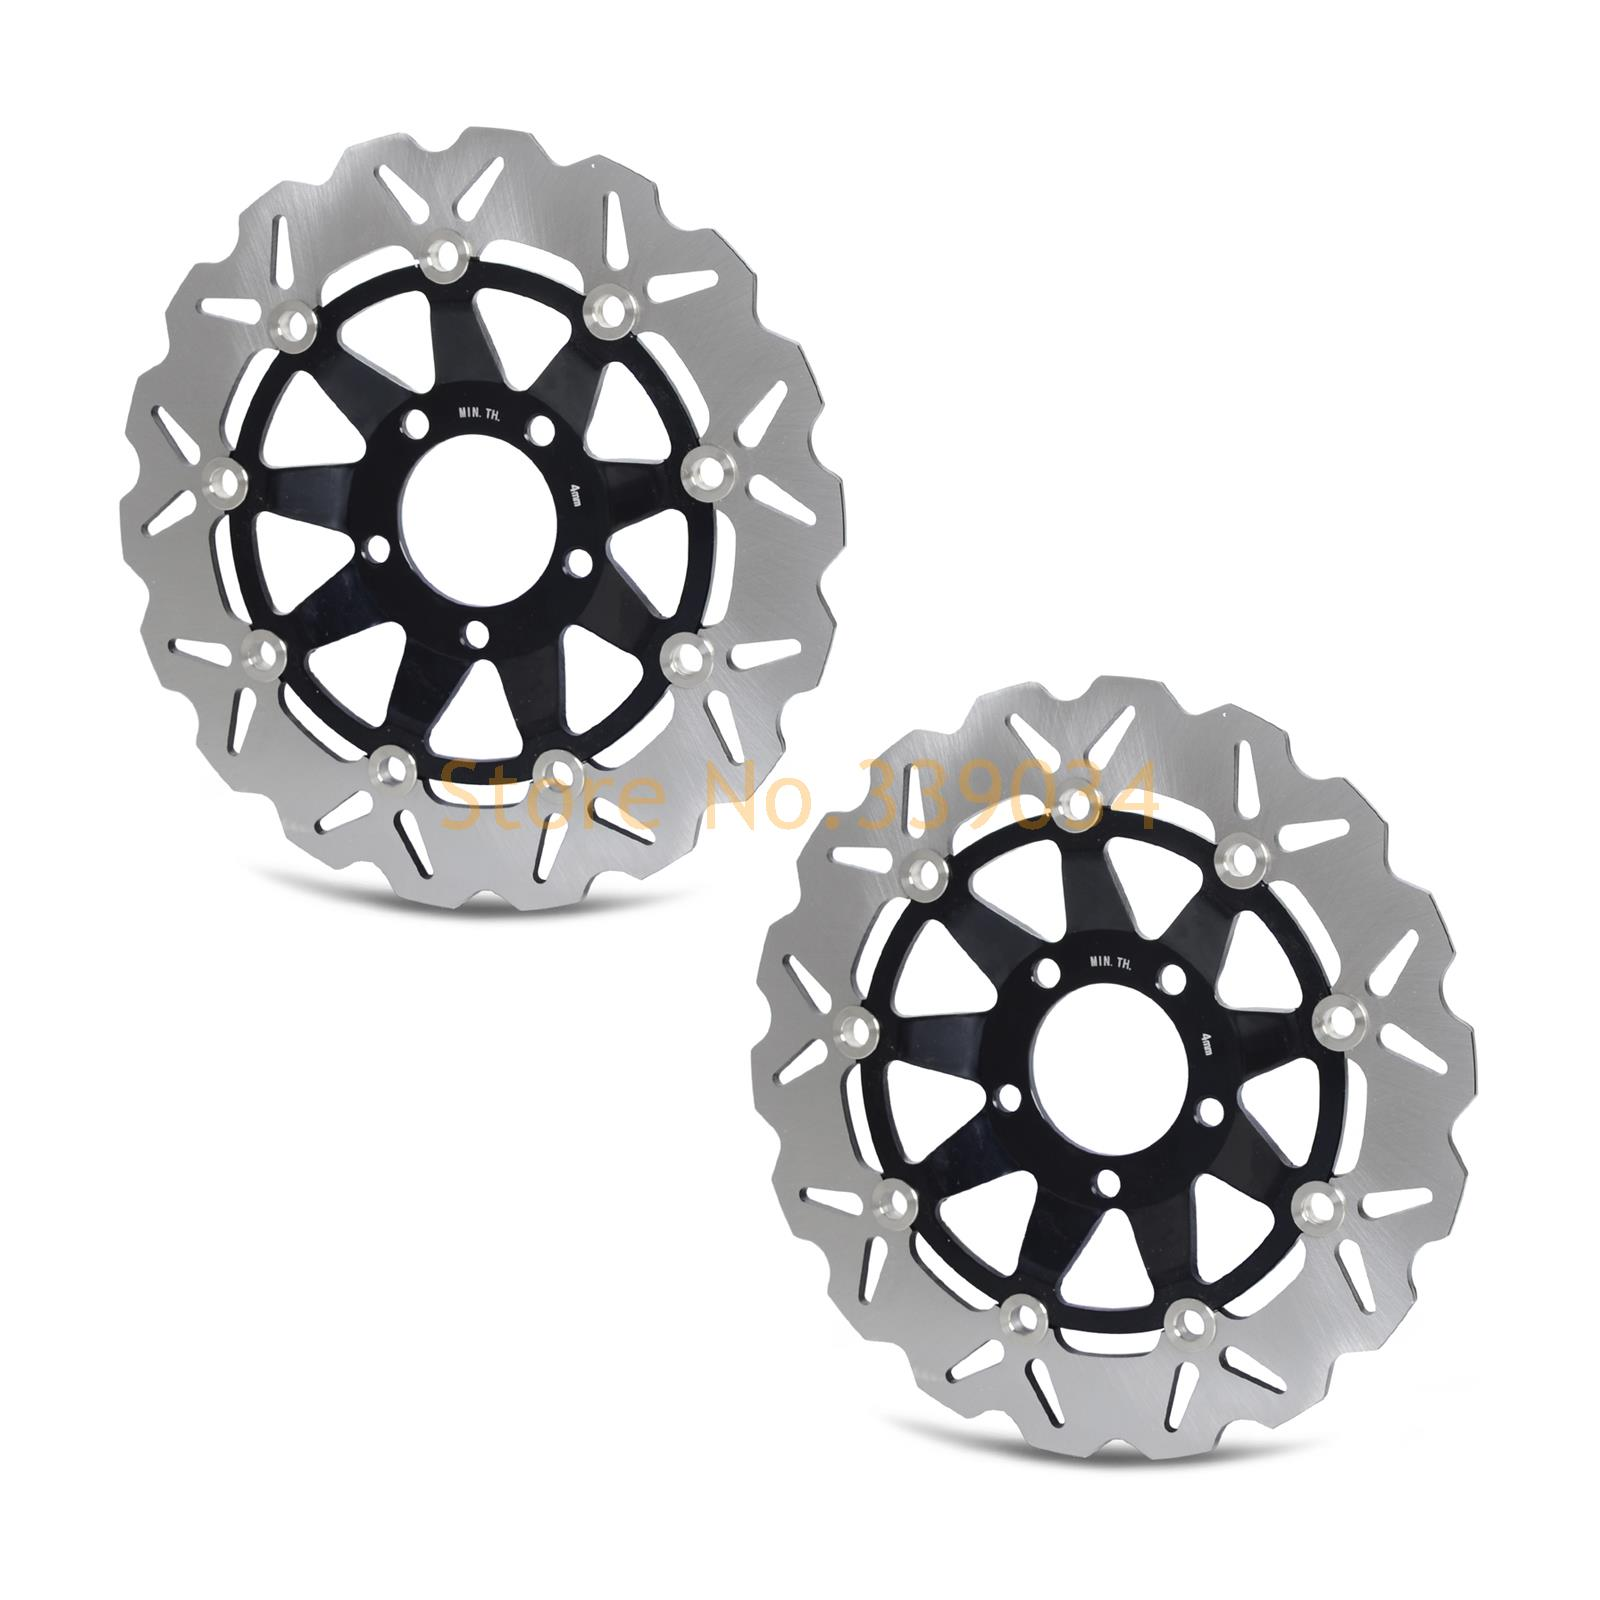 New Motorcycle Front Rotor Brake Disc For Suzuki GSX 400 650 750 GSF 600 650 SV 400 650 RGV 250 J/K/L 88-90